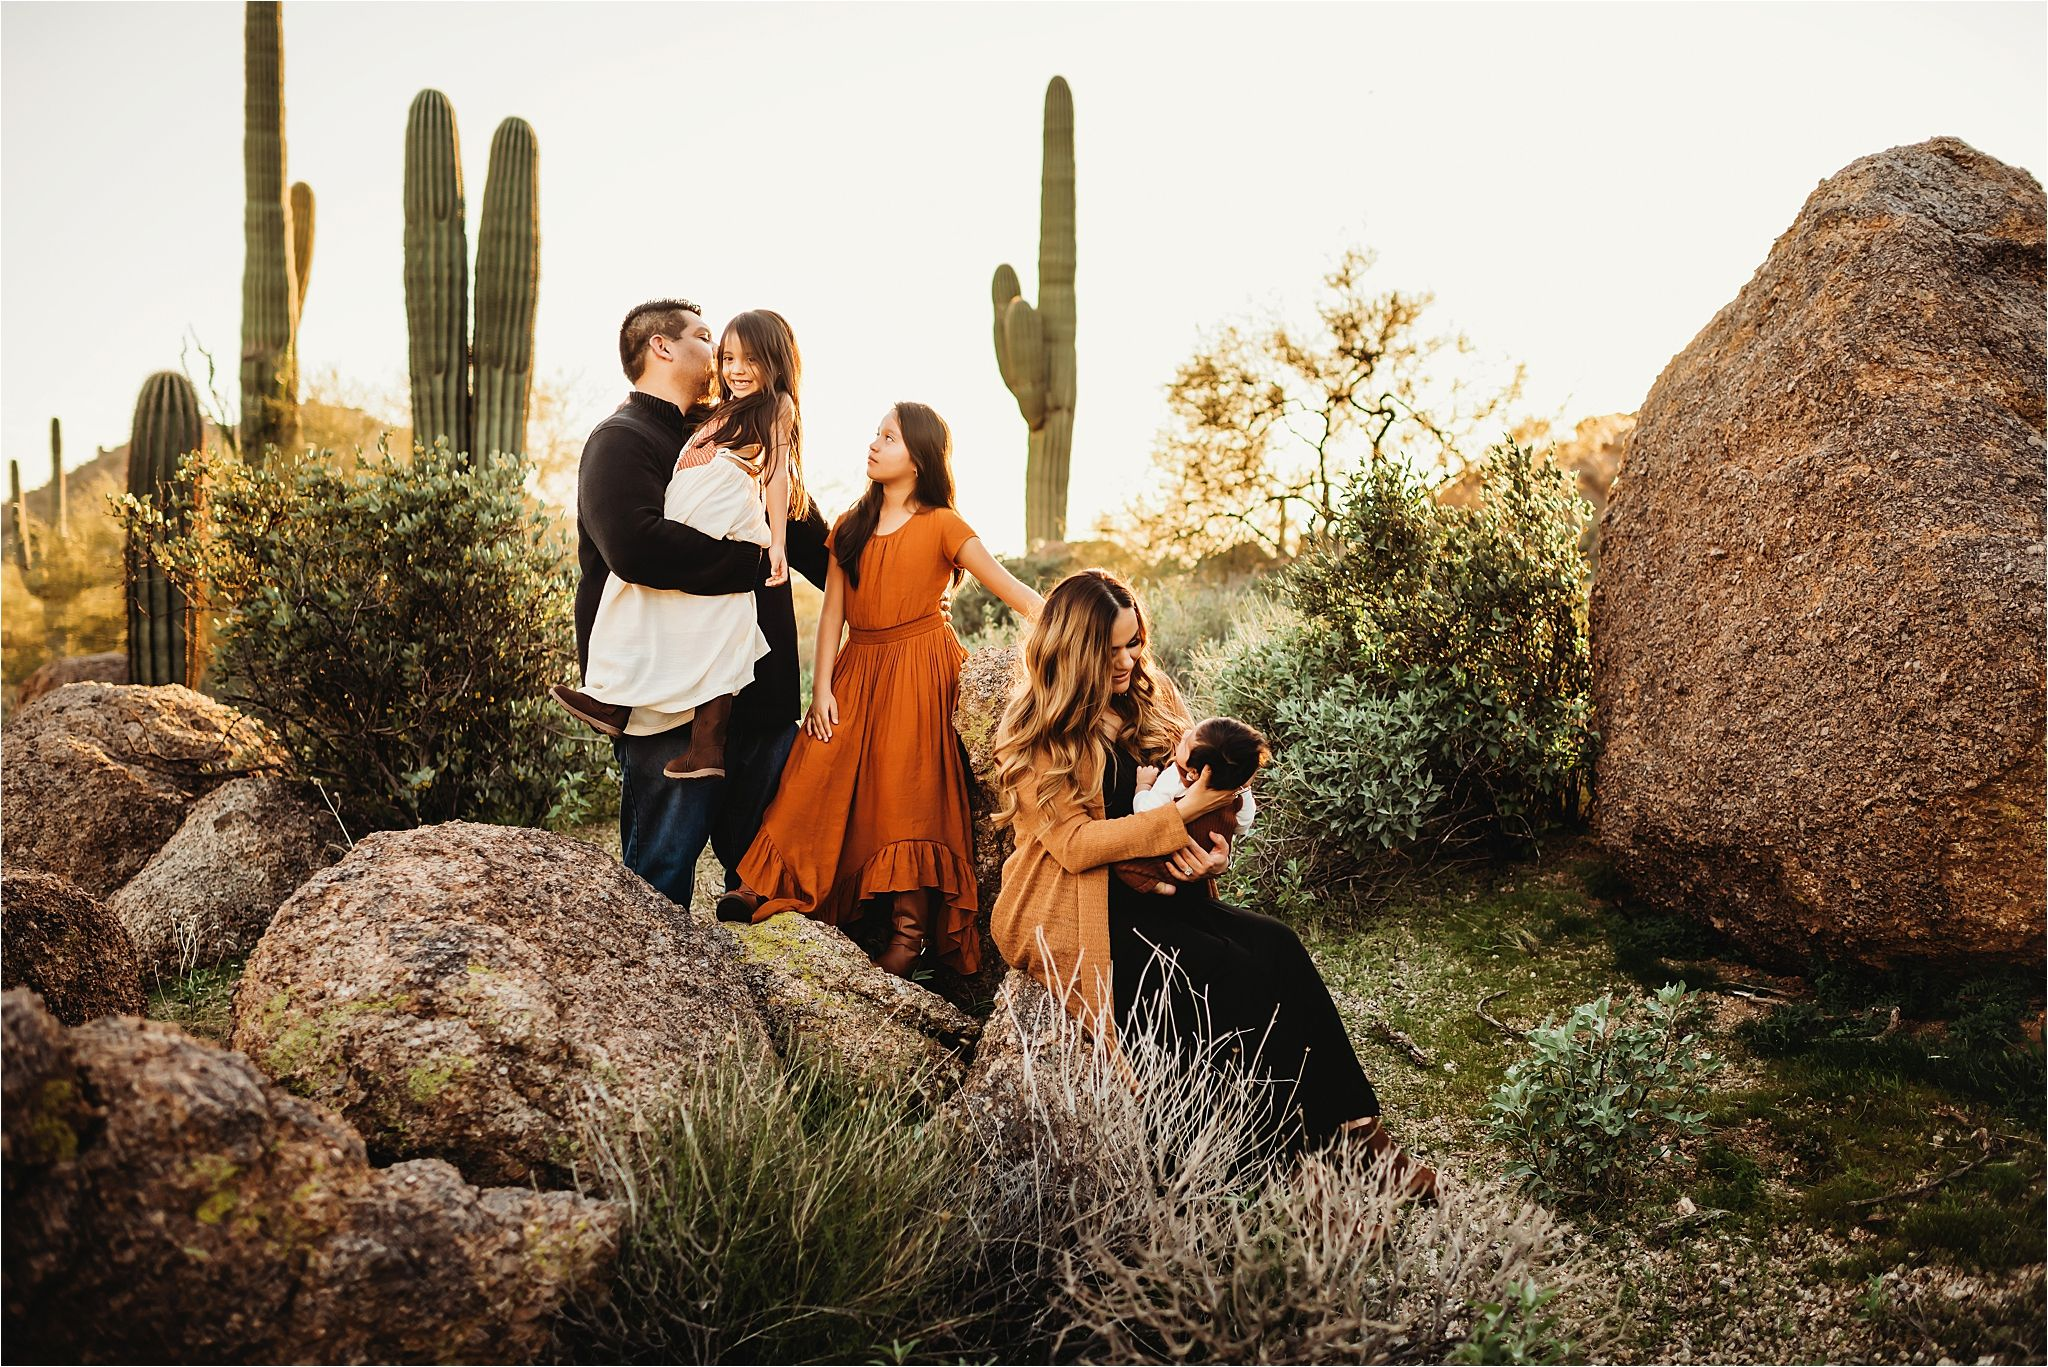 sunset-family-session-Sierra-Vista-Family-Photographer-in-Tucson_1658.jpg